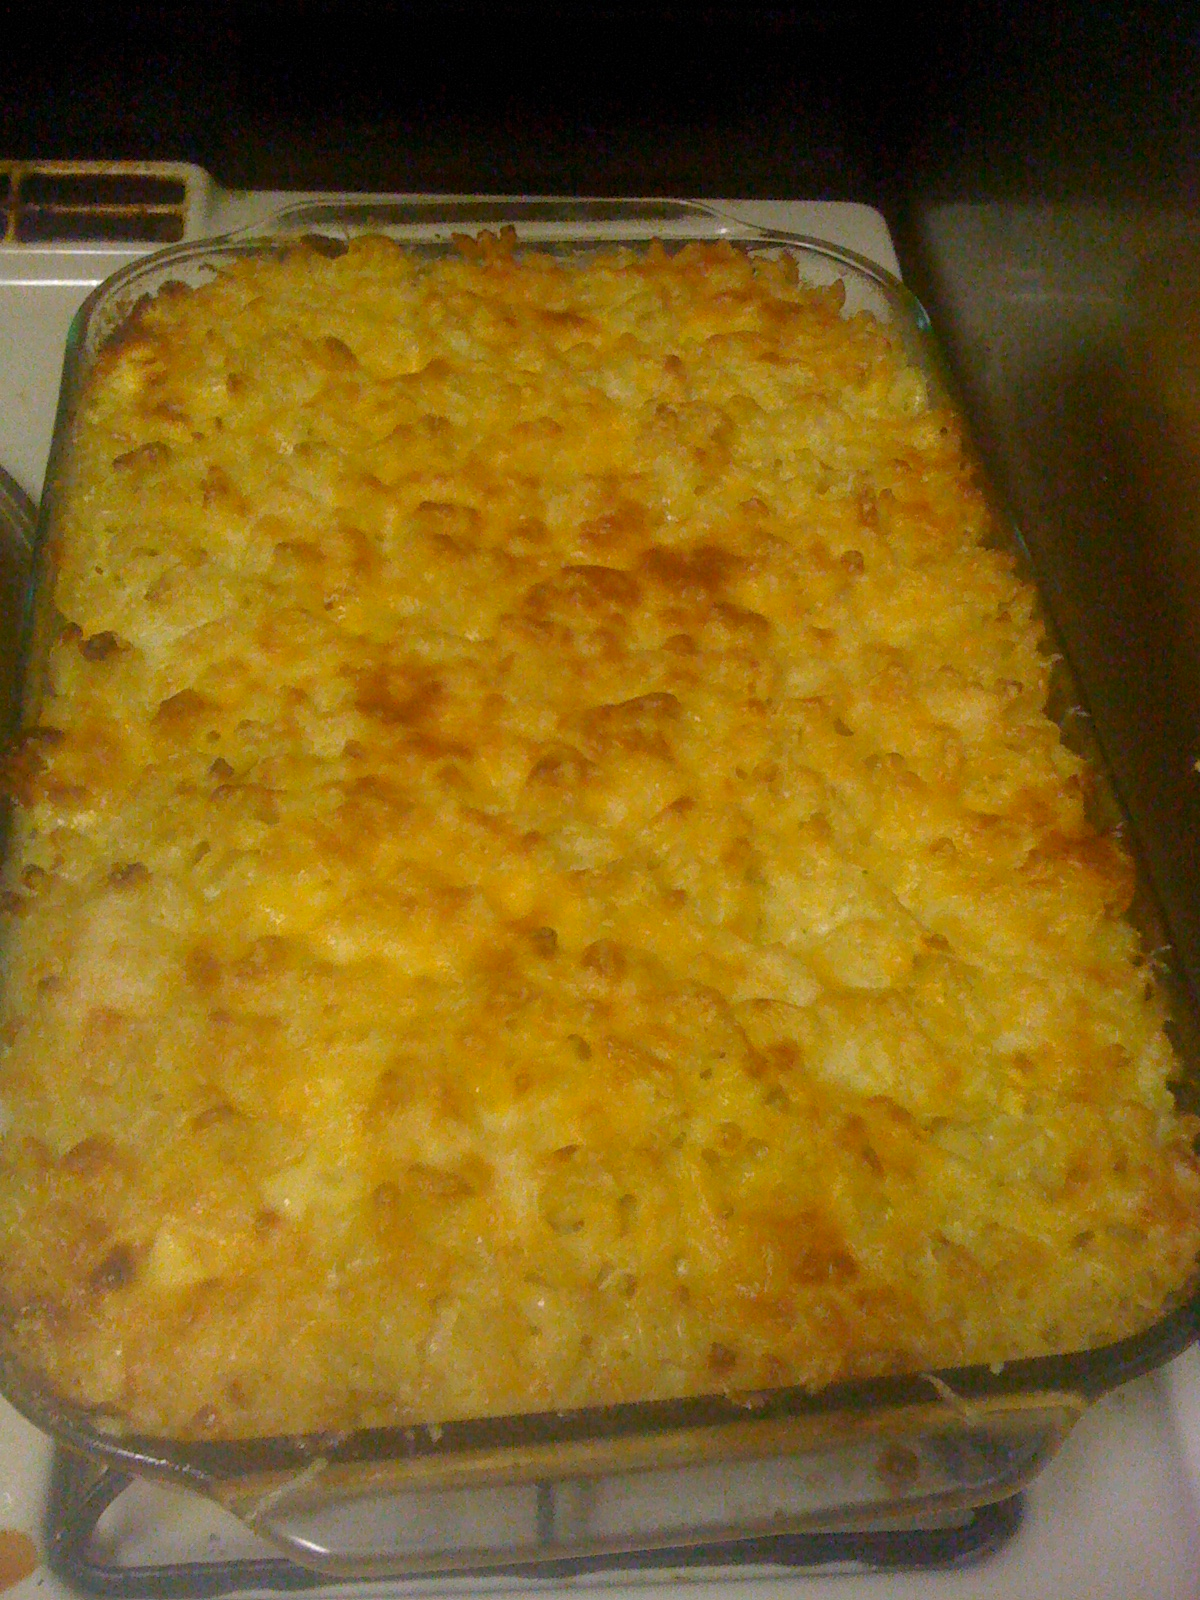 Recipes Course Main Dish Pasta Four Cheese Baked Macaroni And Cheese